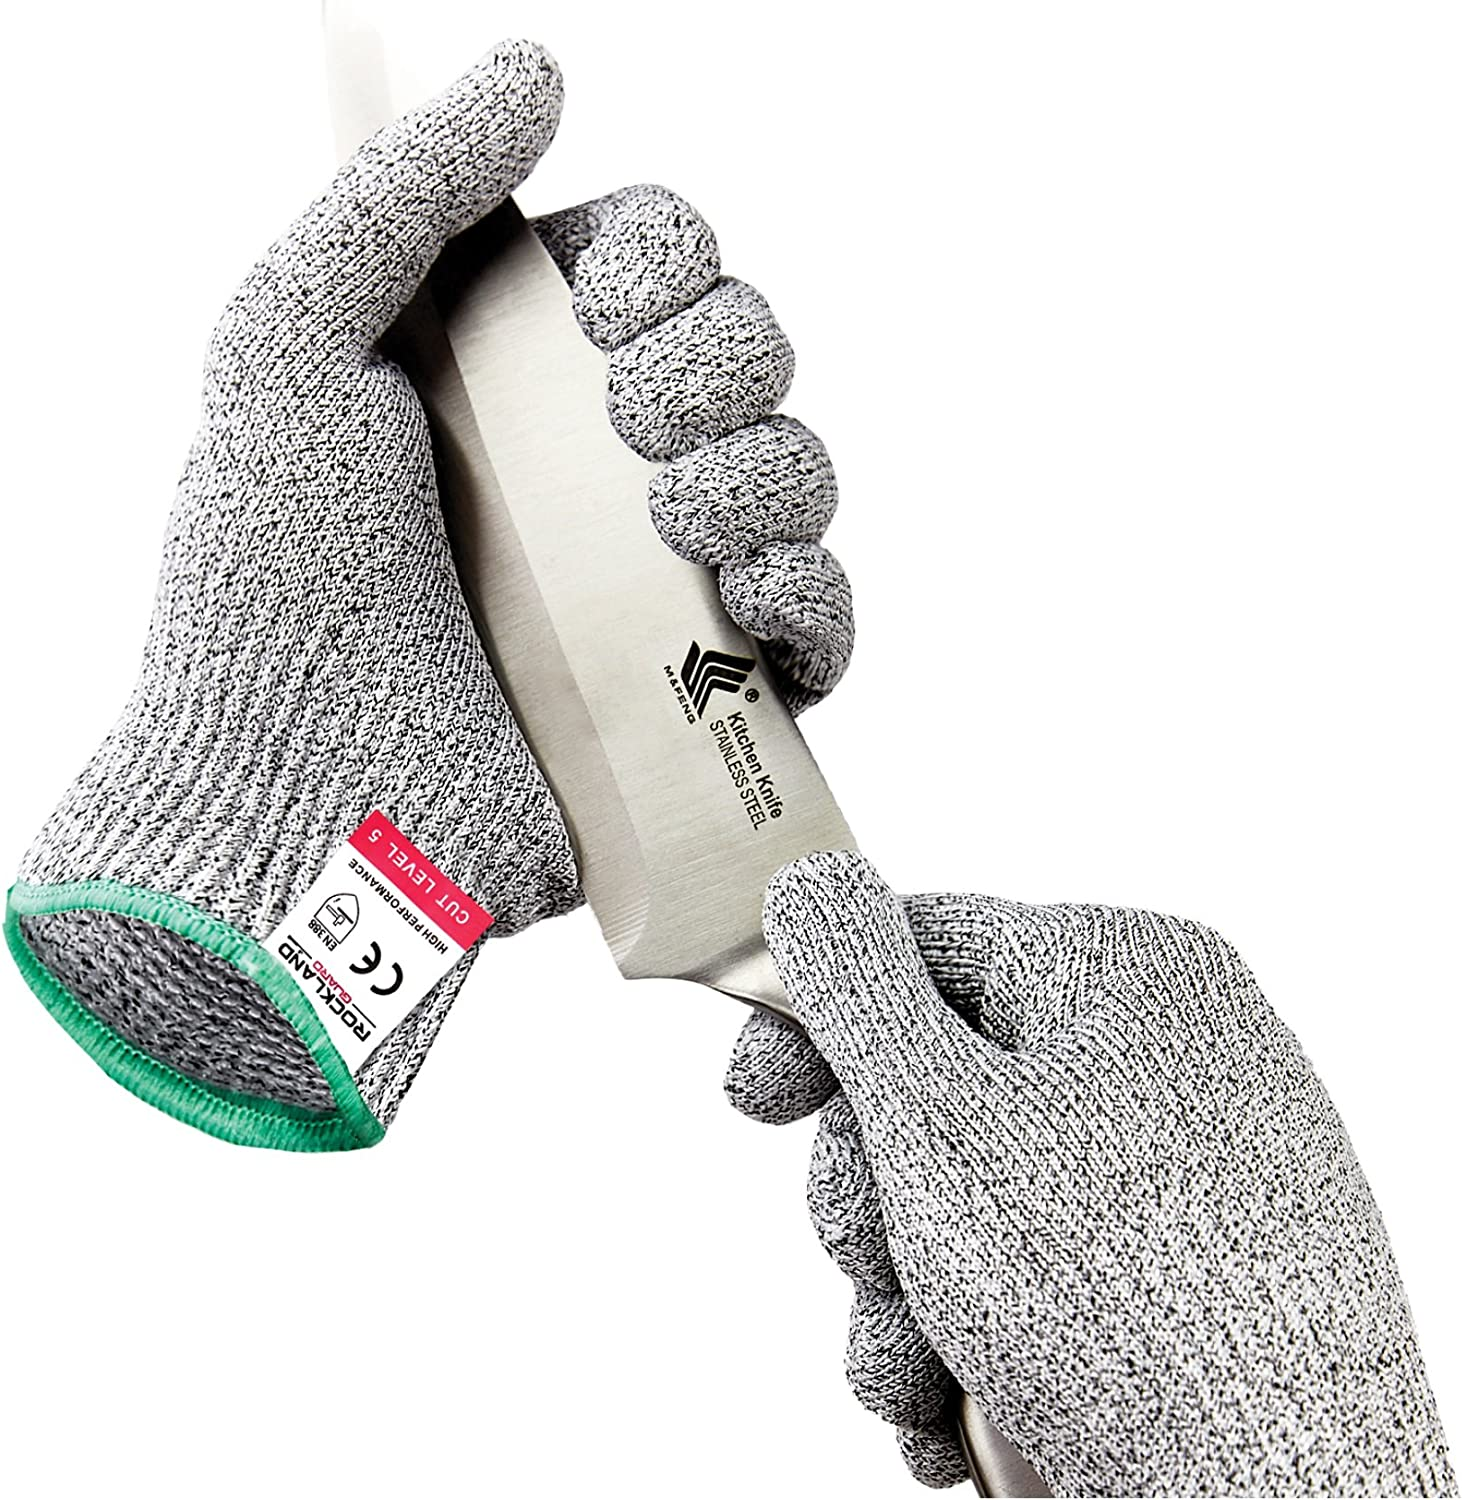 Rockland Guard Cry & Cut Resistant Gloves - High Performance Level 5 Protection, Food Grade. Free Storage Bag Included!